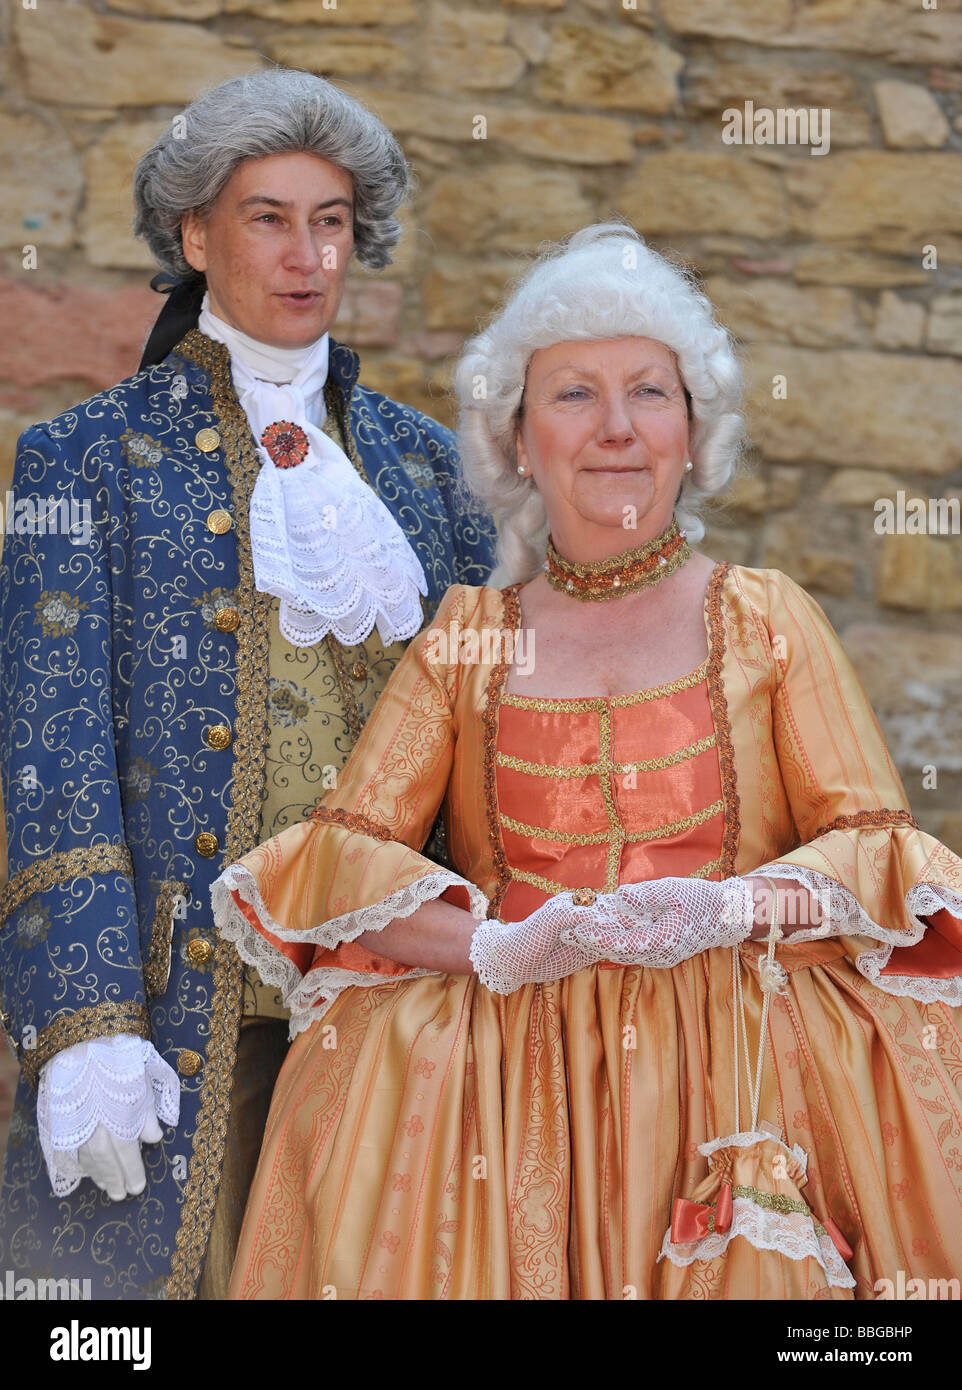 Life in the Baroque period of the 18th Century, couple in Venetian clothes, Schiller Jahrhundertfest century festival, - Stock Image